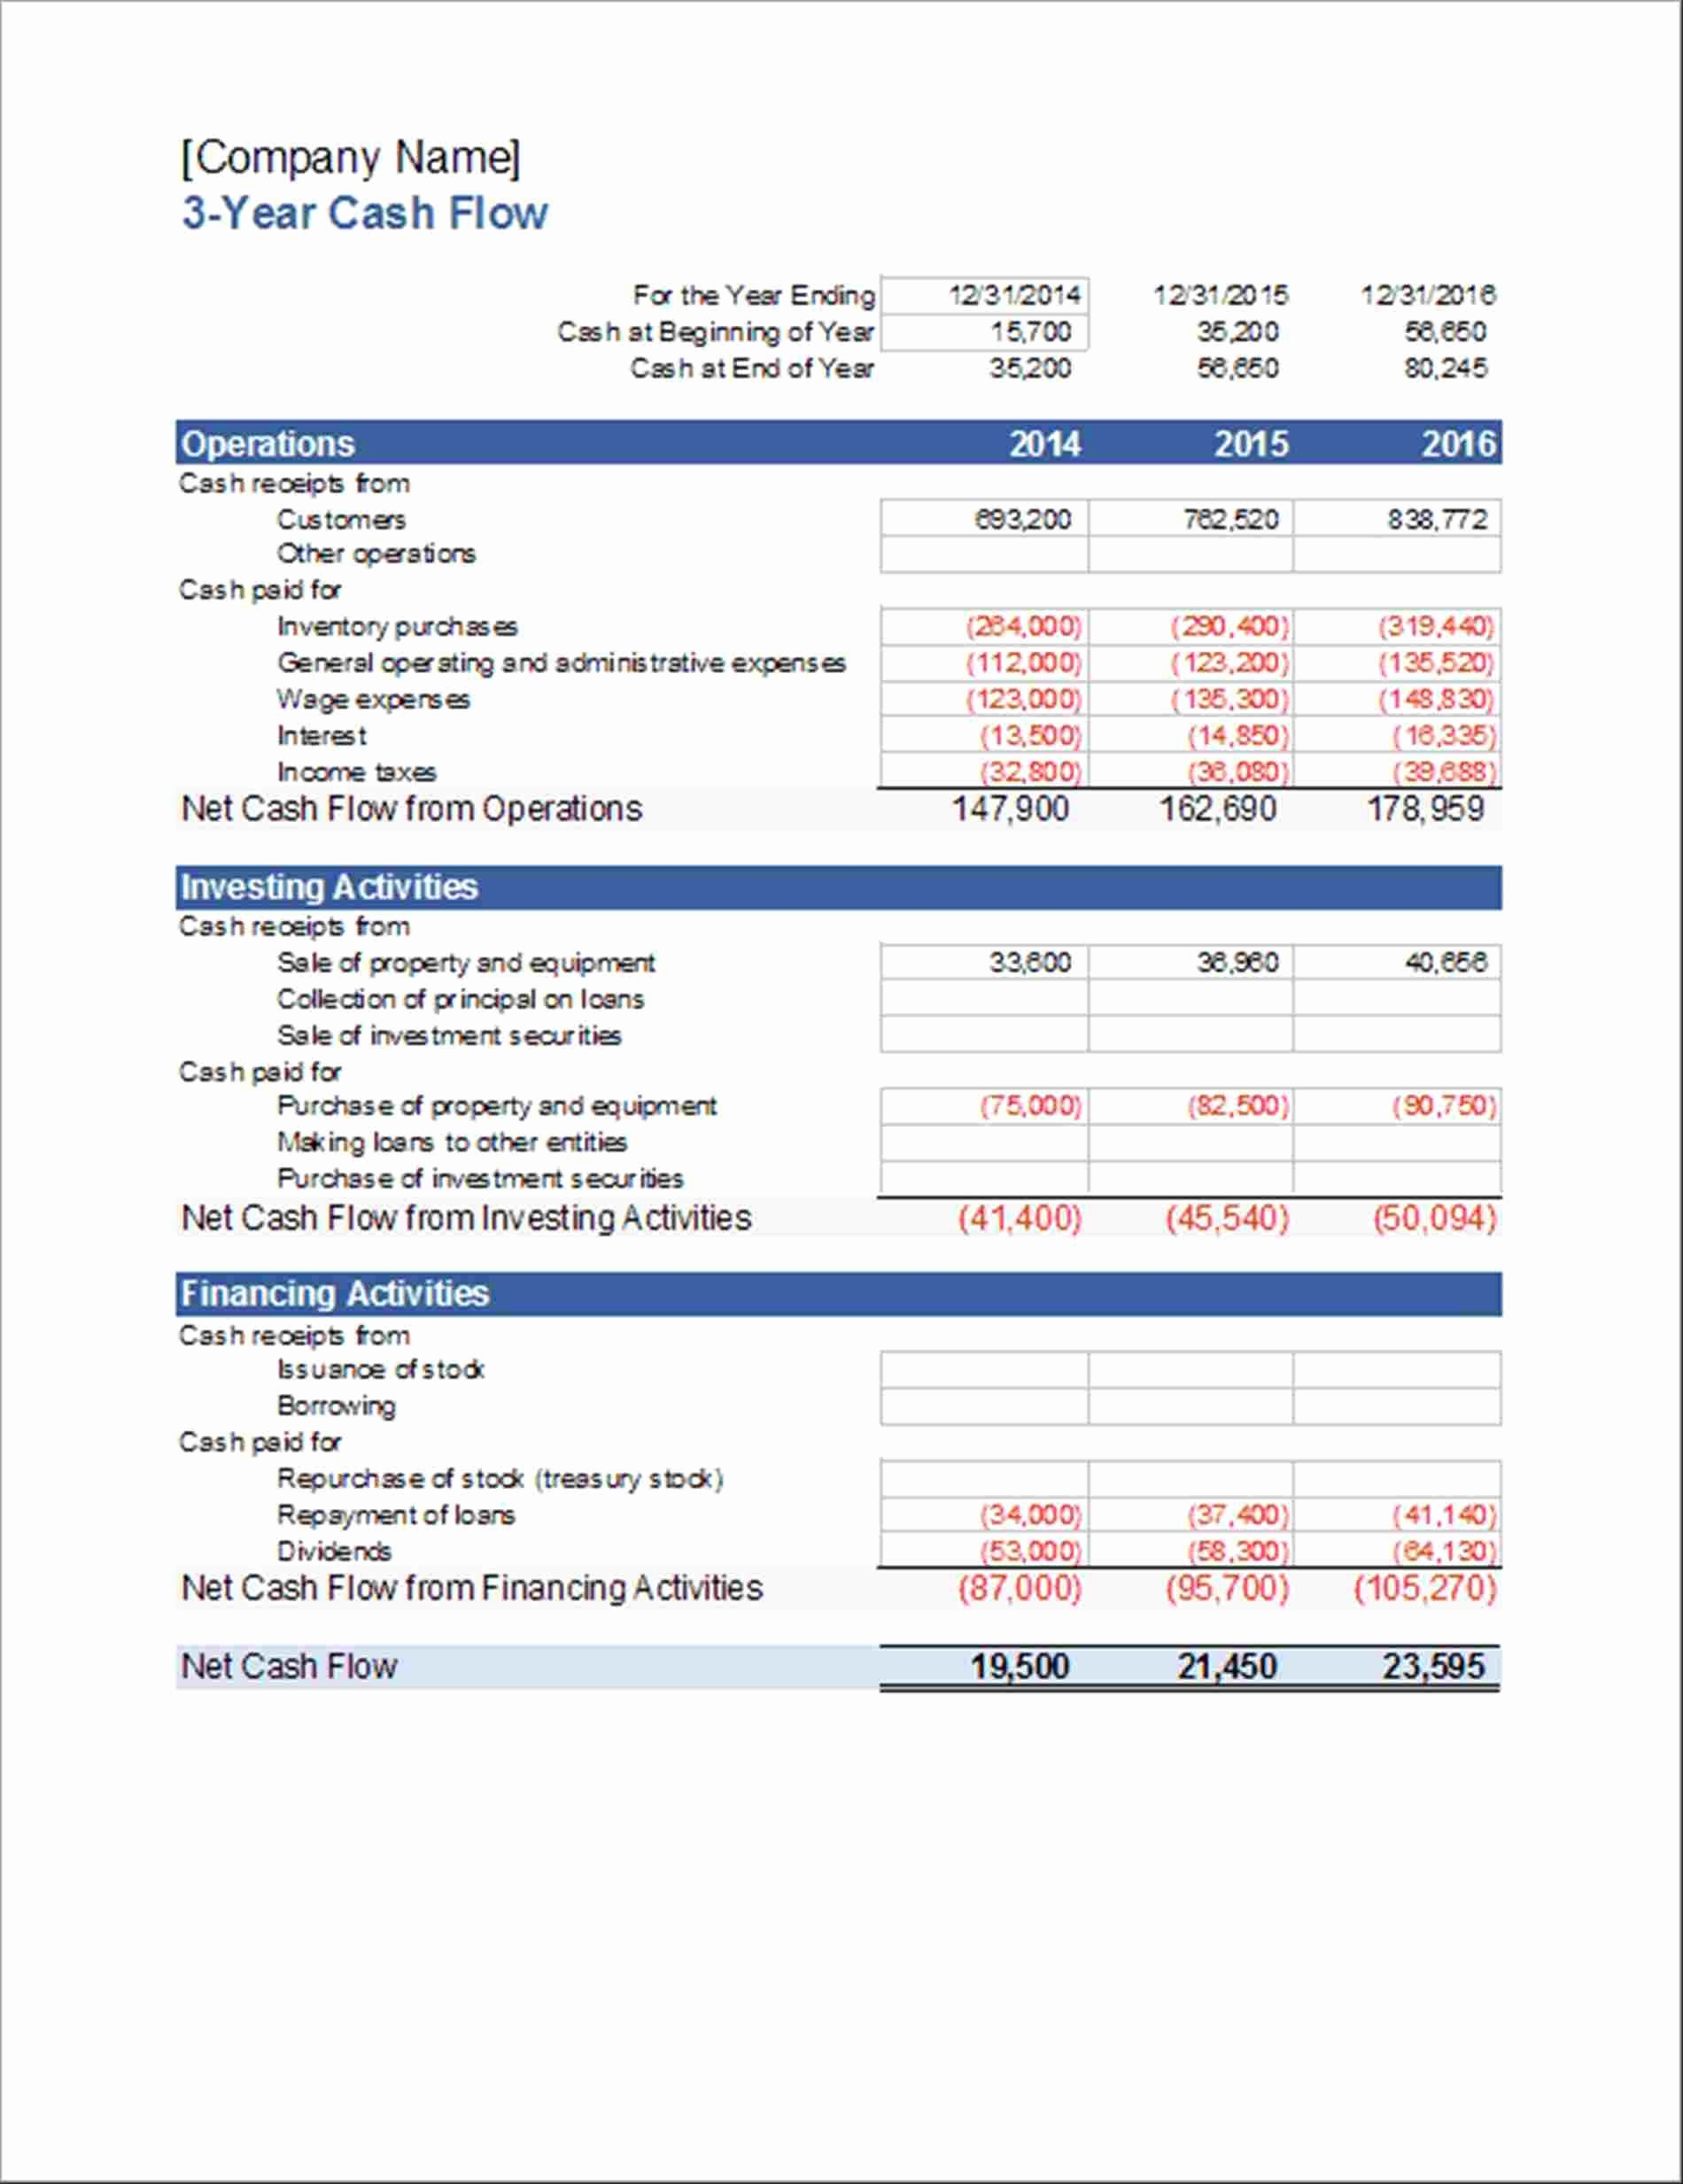 Uca Cash Flow Excel Template Lovely Uca Cash Flow Excel Template Template Designs and Ideasuca